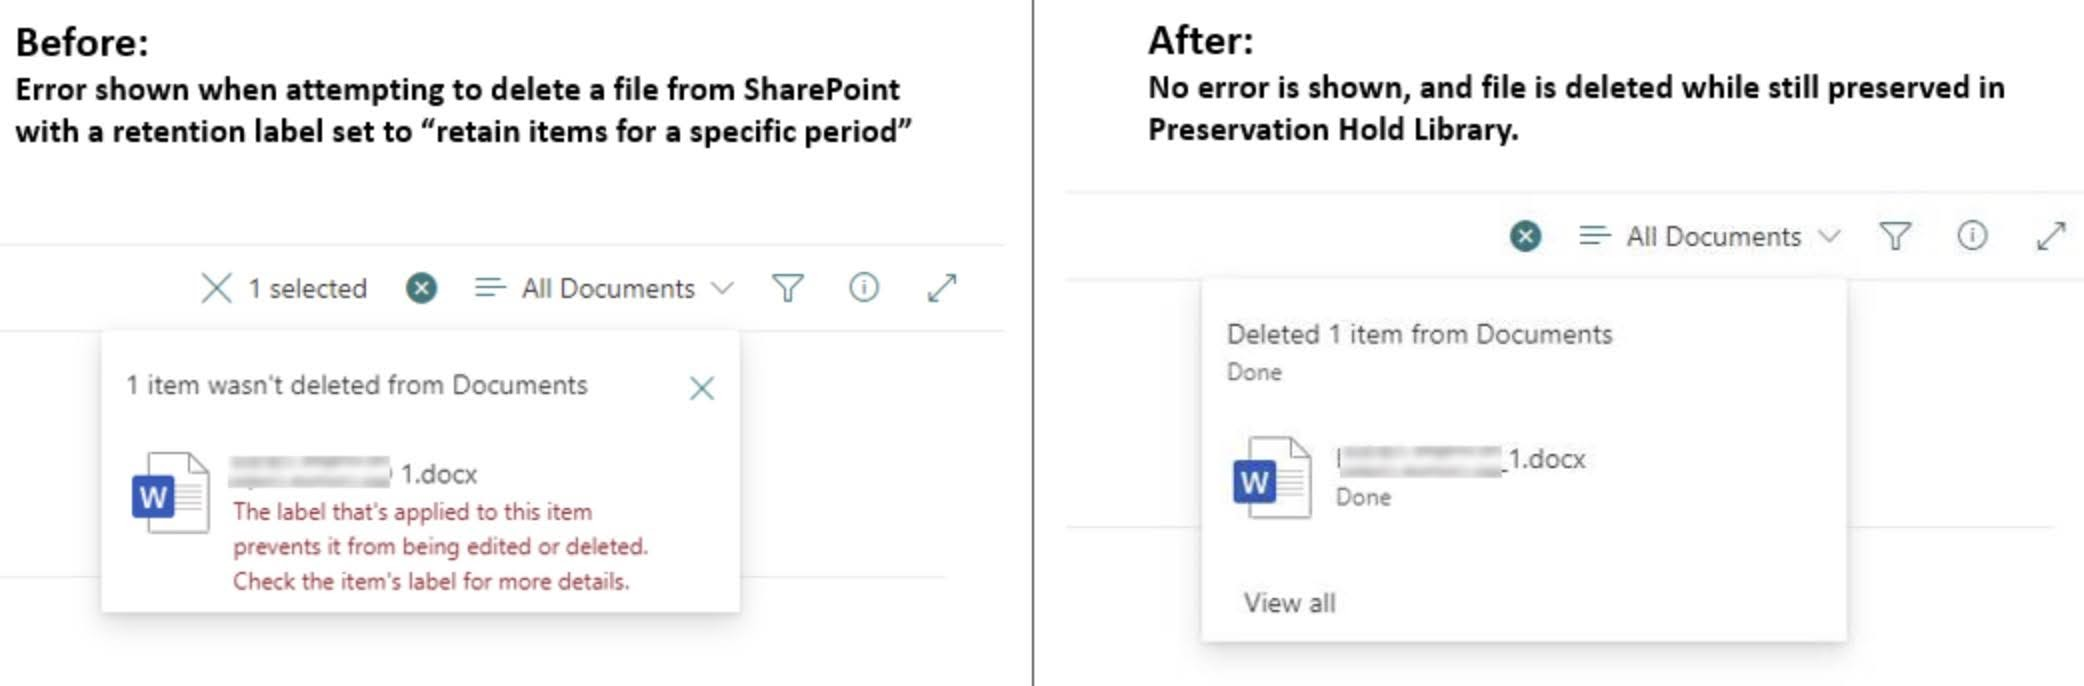 """When deleted, these files will still be preserved for compliance purposes by moving a copy of them to the """"Preservation Hold Library"""" of the site where they can be accessed by eDiscovery and other compliance solutions."""